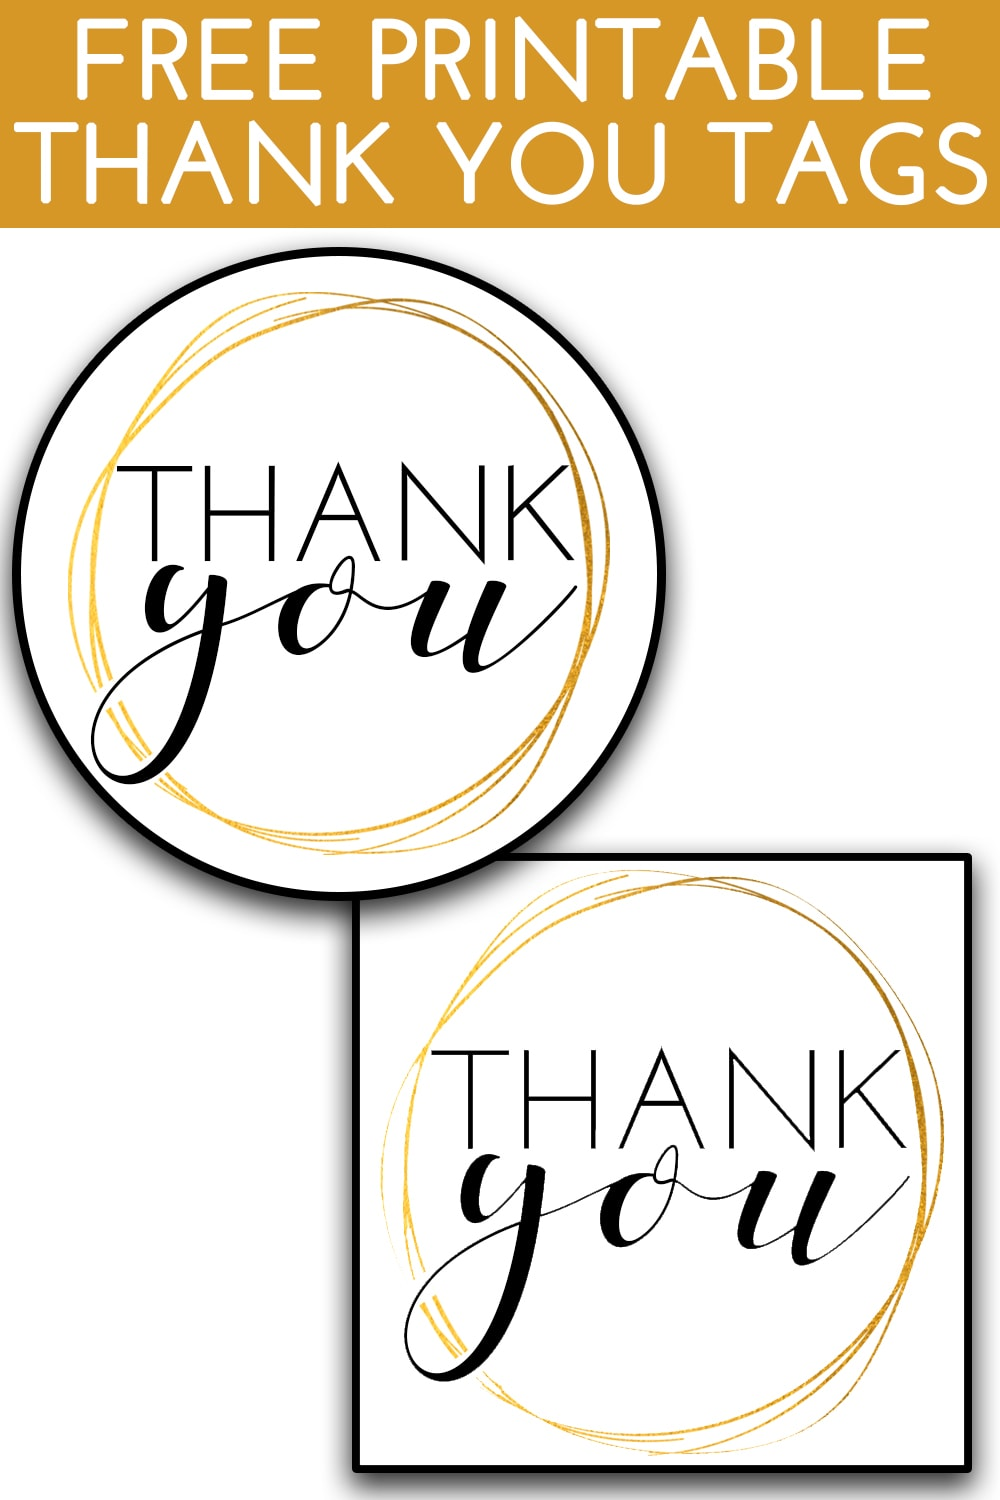 This is a picture of Printable Thank You Tags within construction